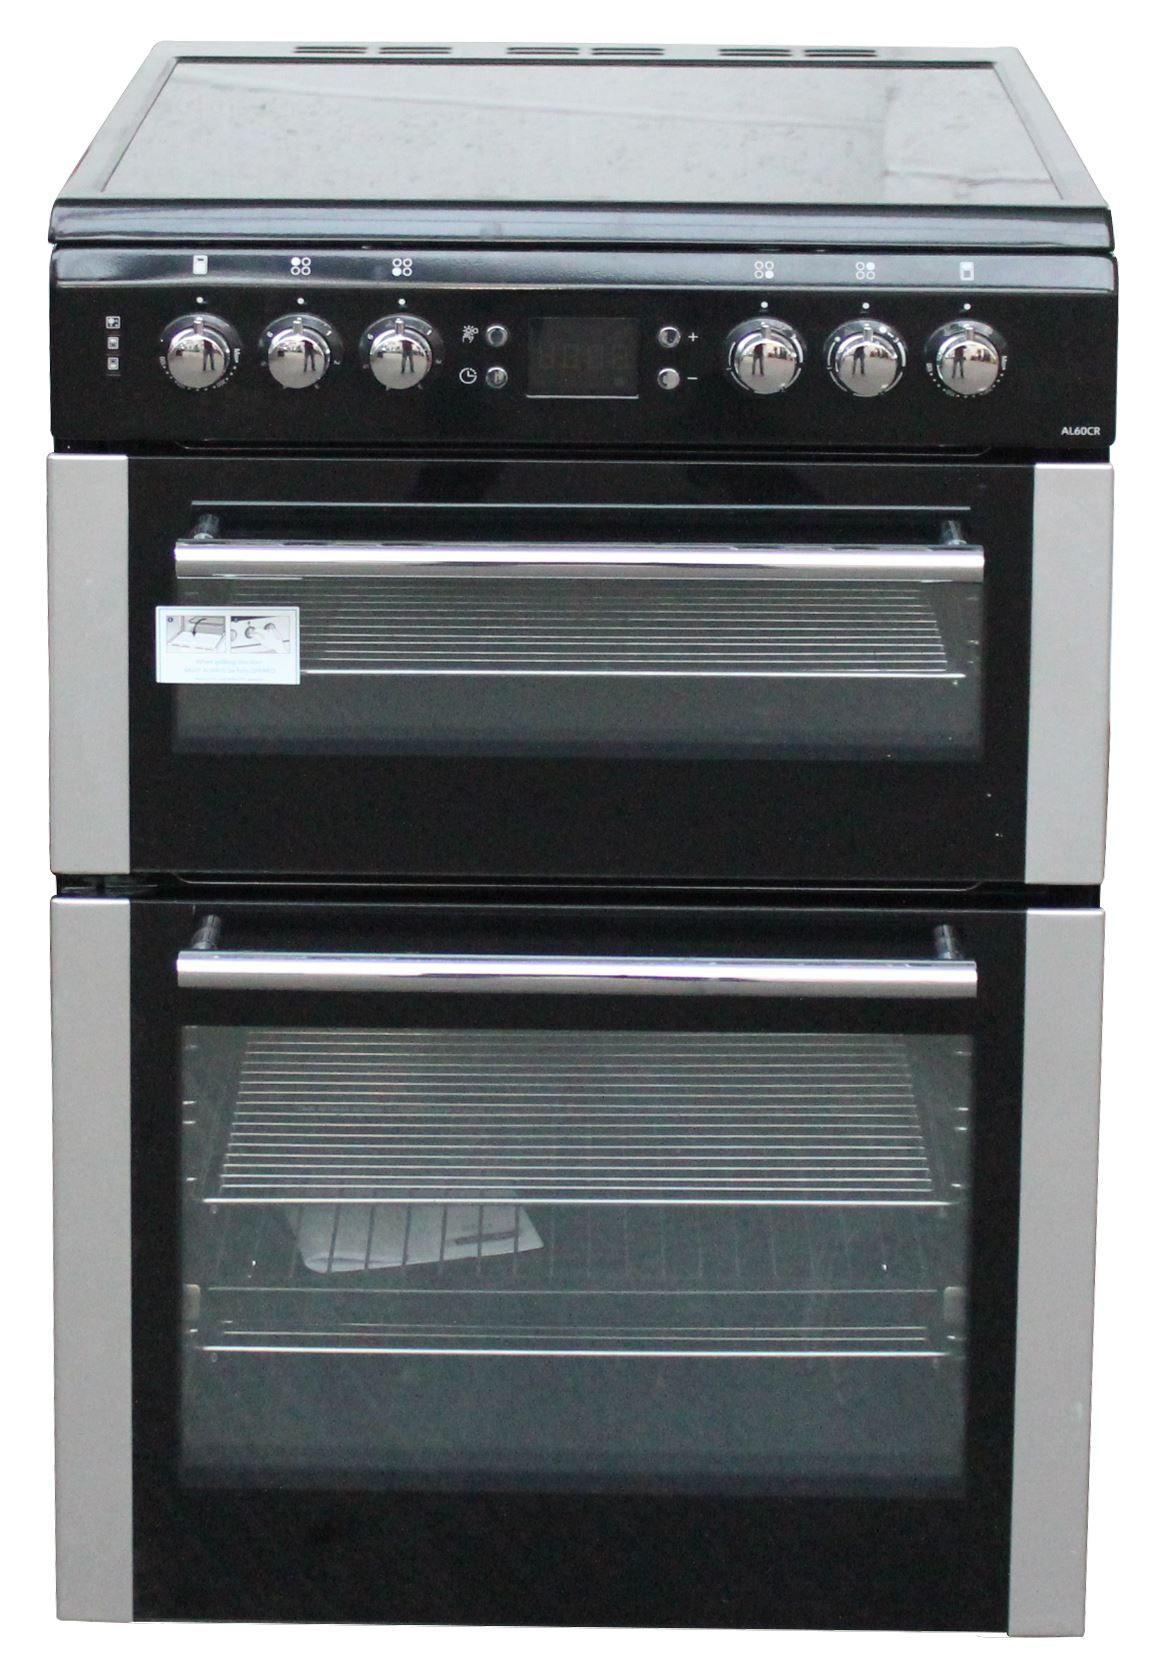 Leisure Electric Mini Range Cooker A La Carte Al60crk 60cm